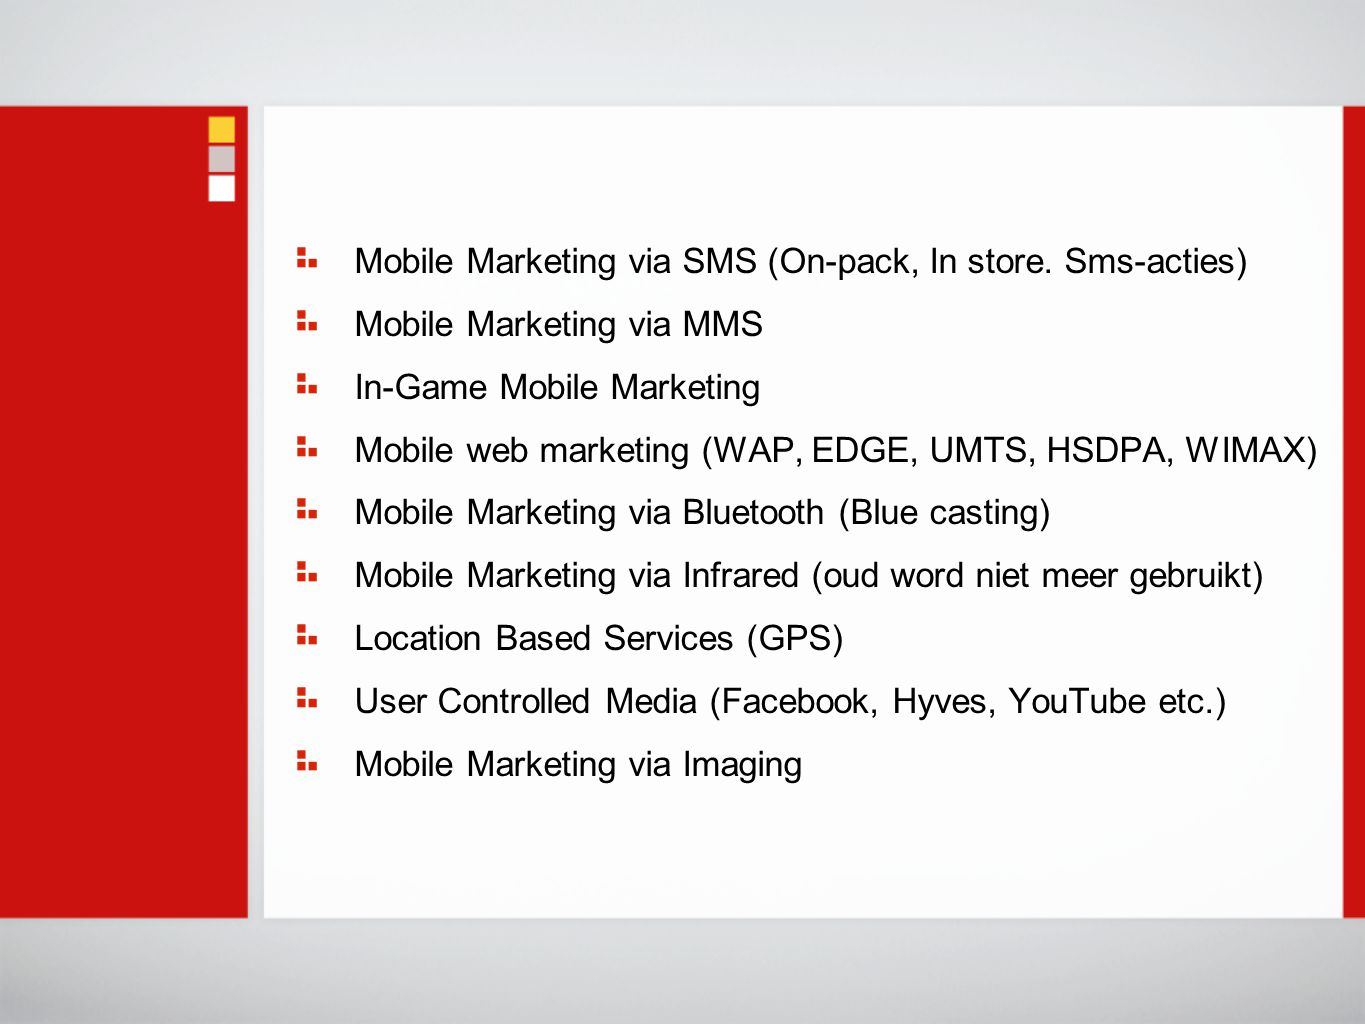 Mobile Marketing via SMS (On-pack, In store.